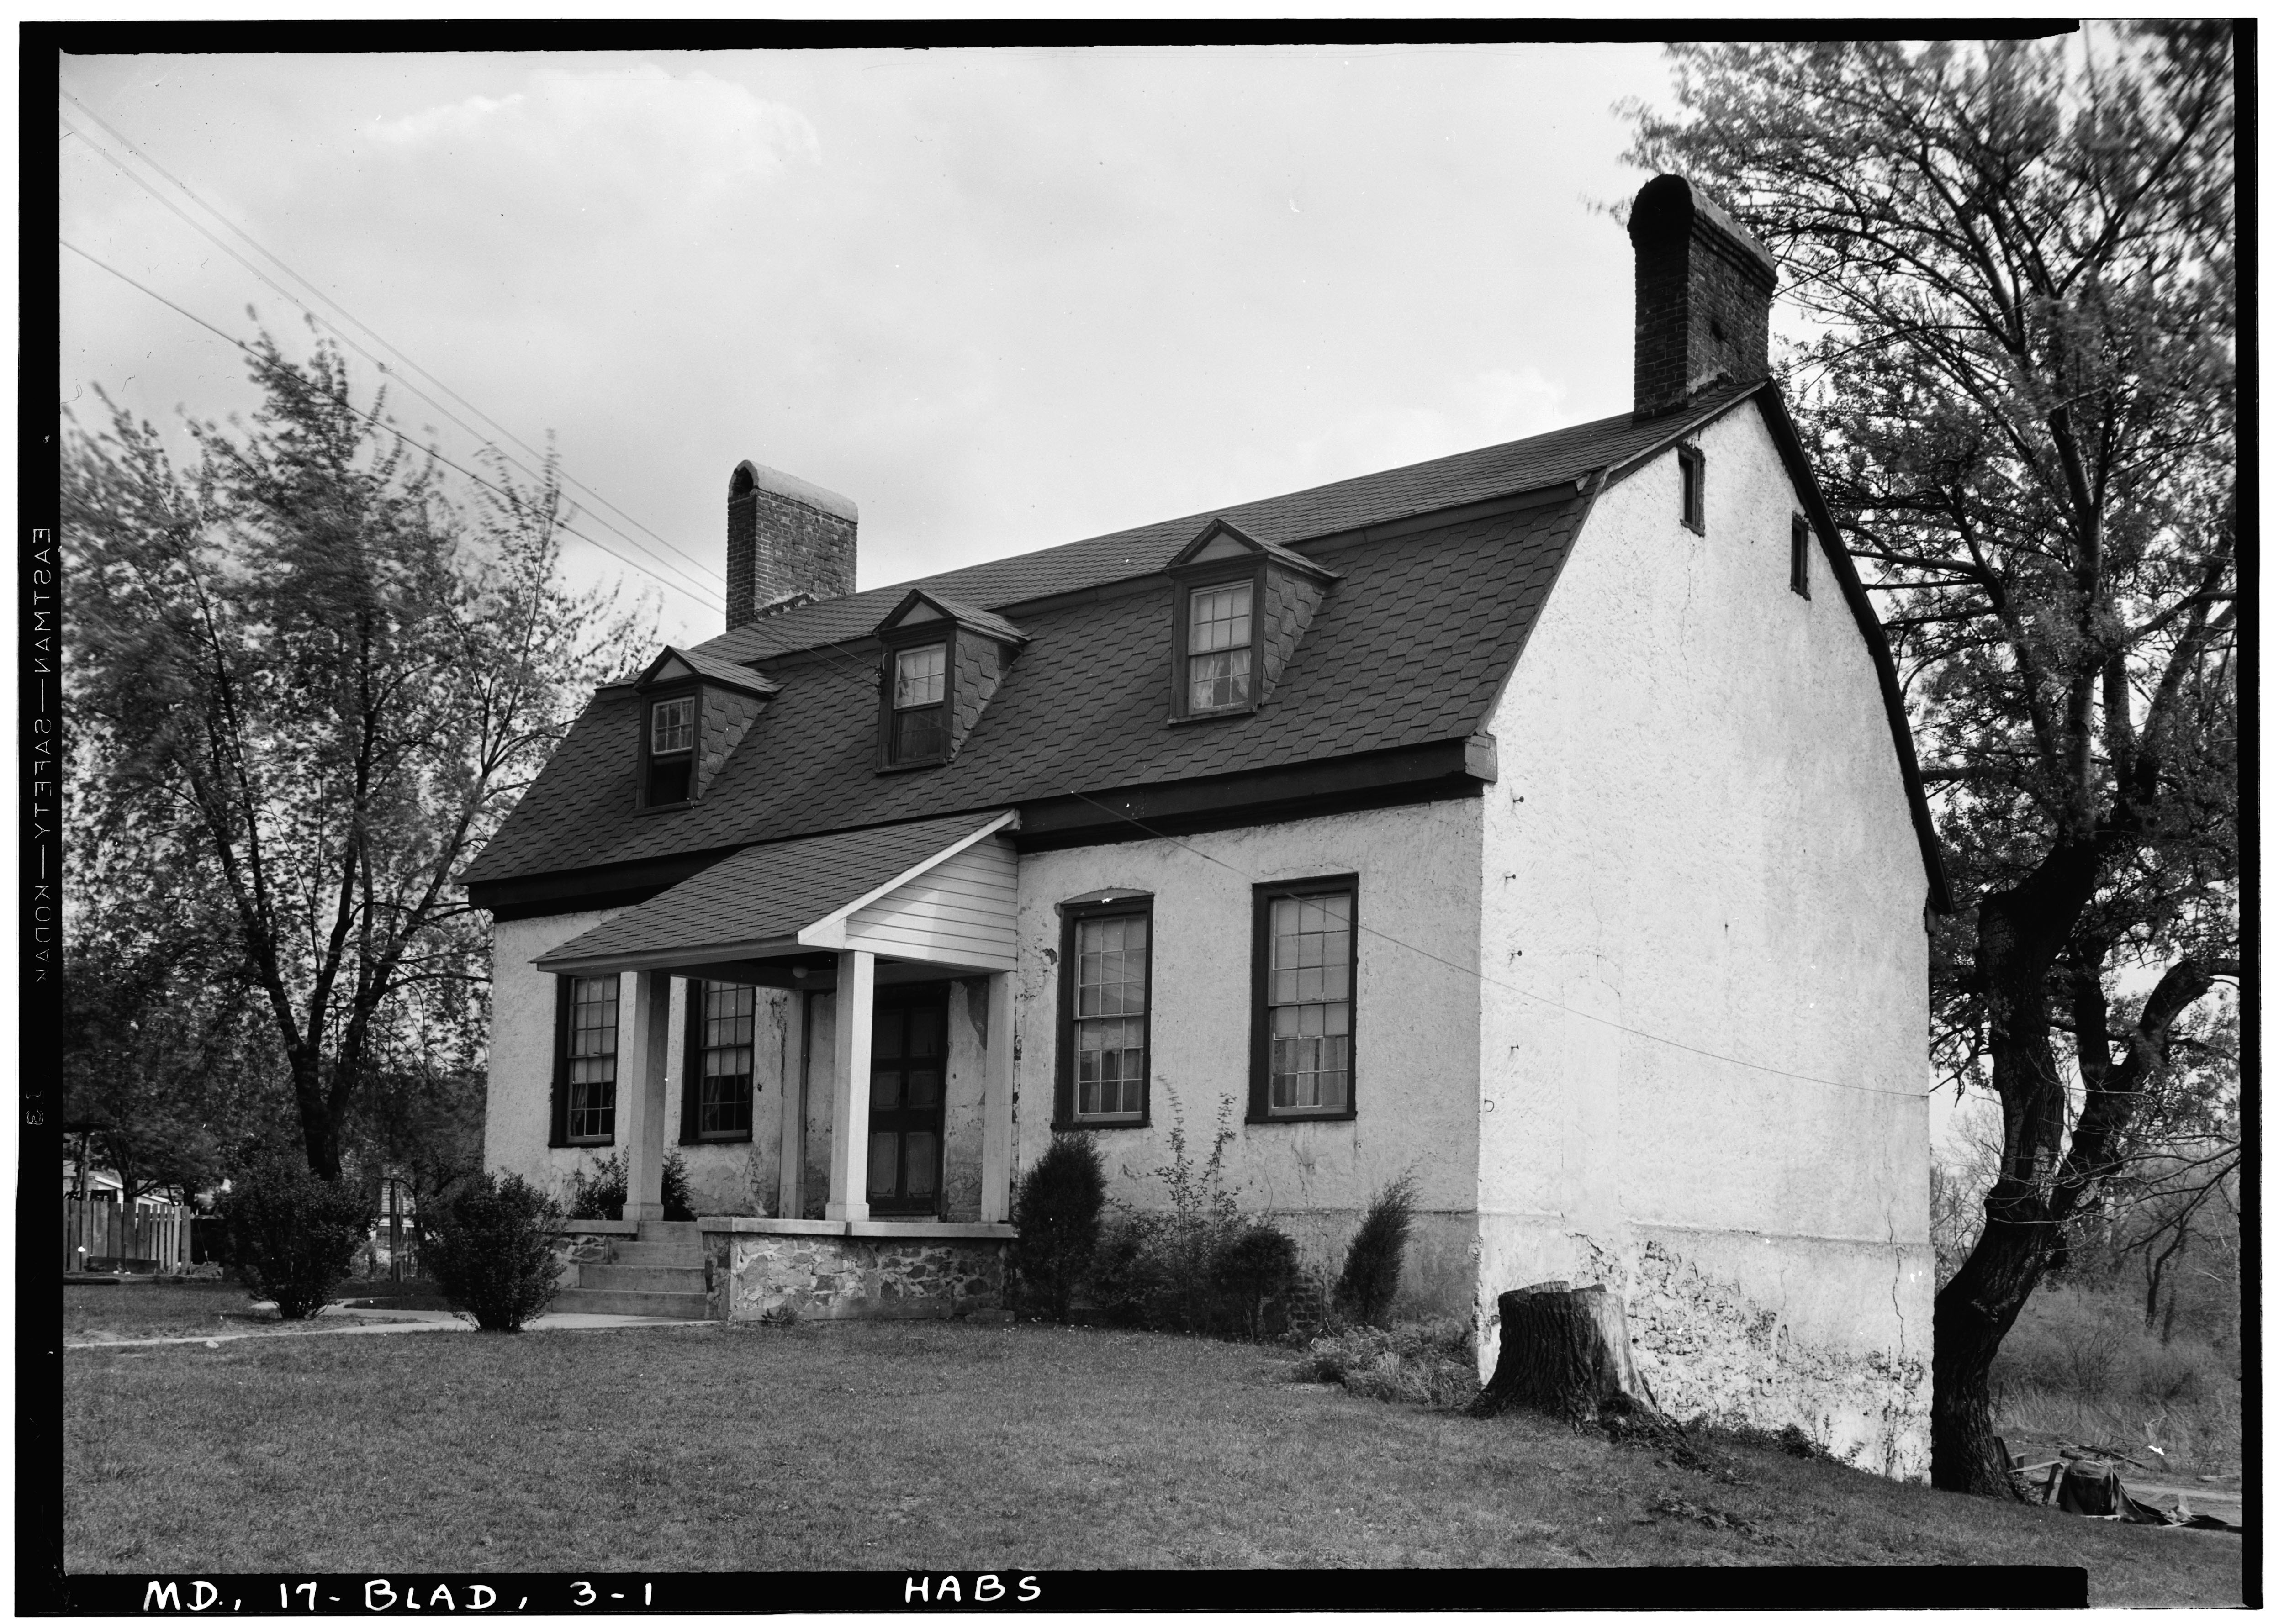 Halleary-Magruder House